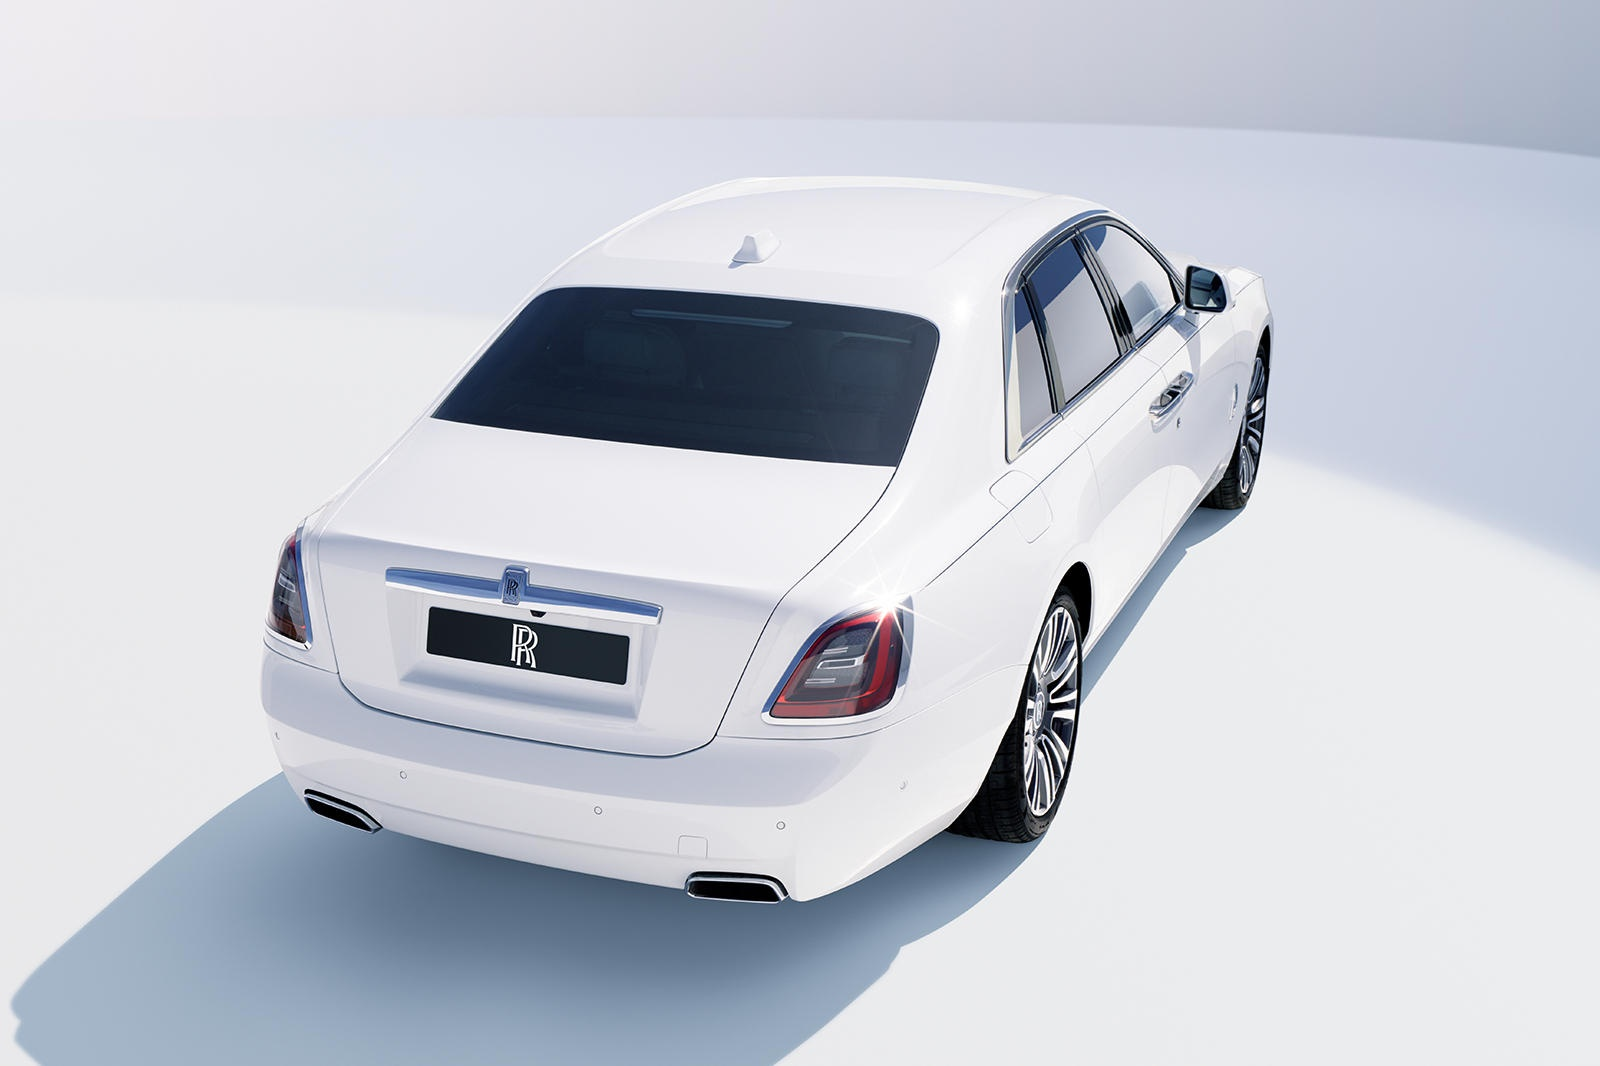 Danh gia Rolls-Royce Ghost 2021 anh 4